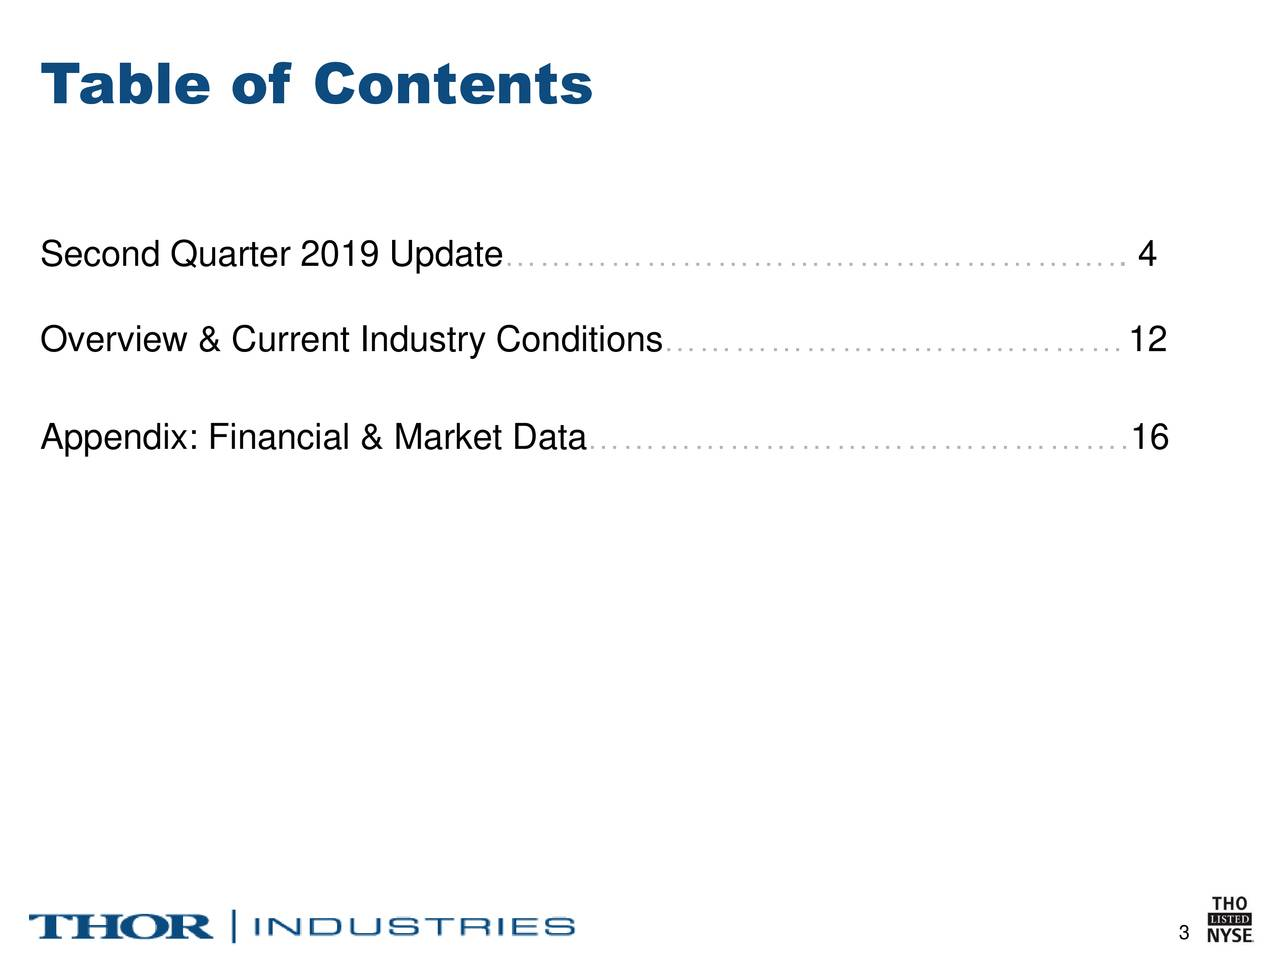 Second Quarter 2019 Update…………………………………………….. 4 Overview & Current Industry Conditions…………………………………12 Appendix: Financial & Market Data……………………………………….16 3